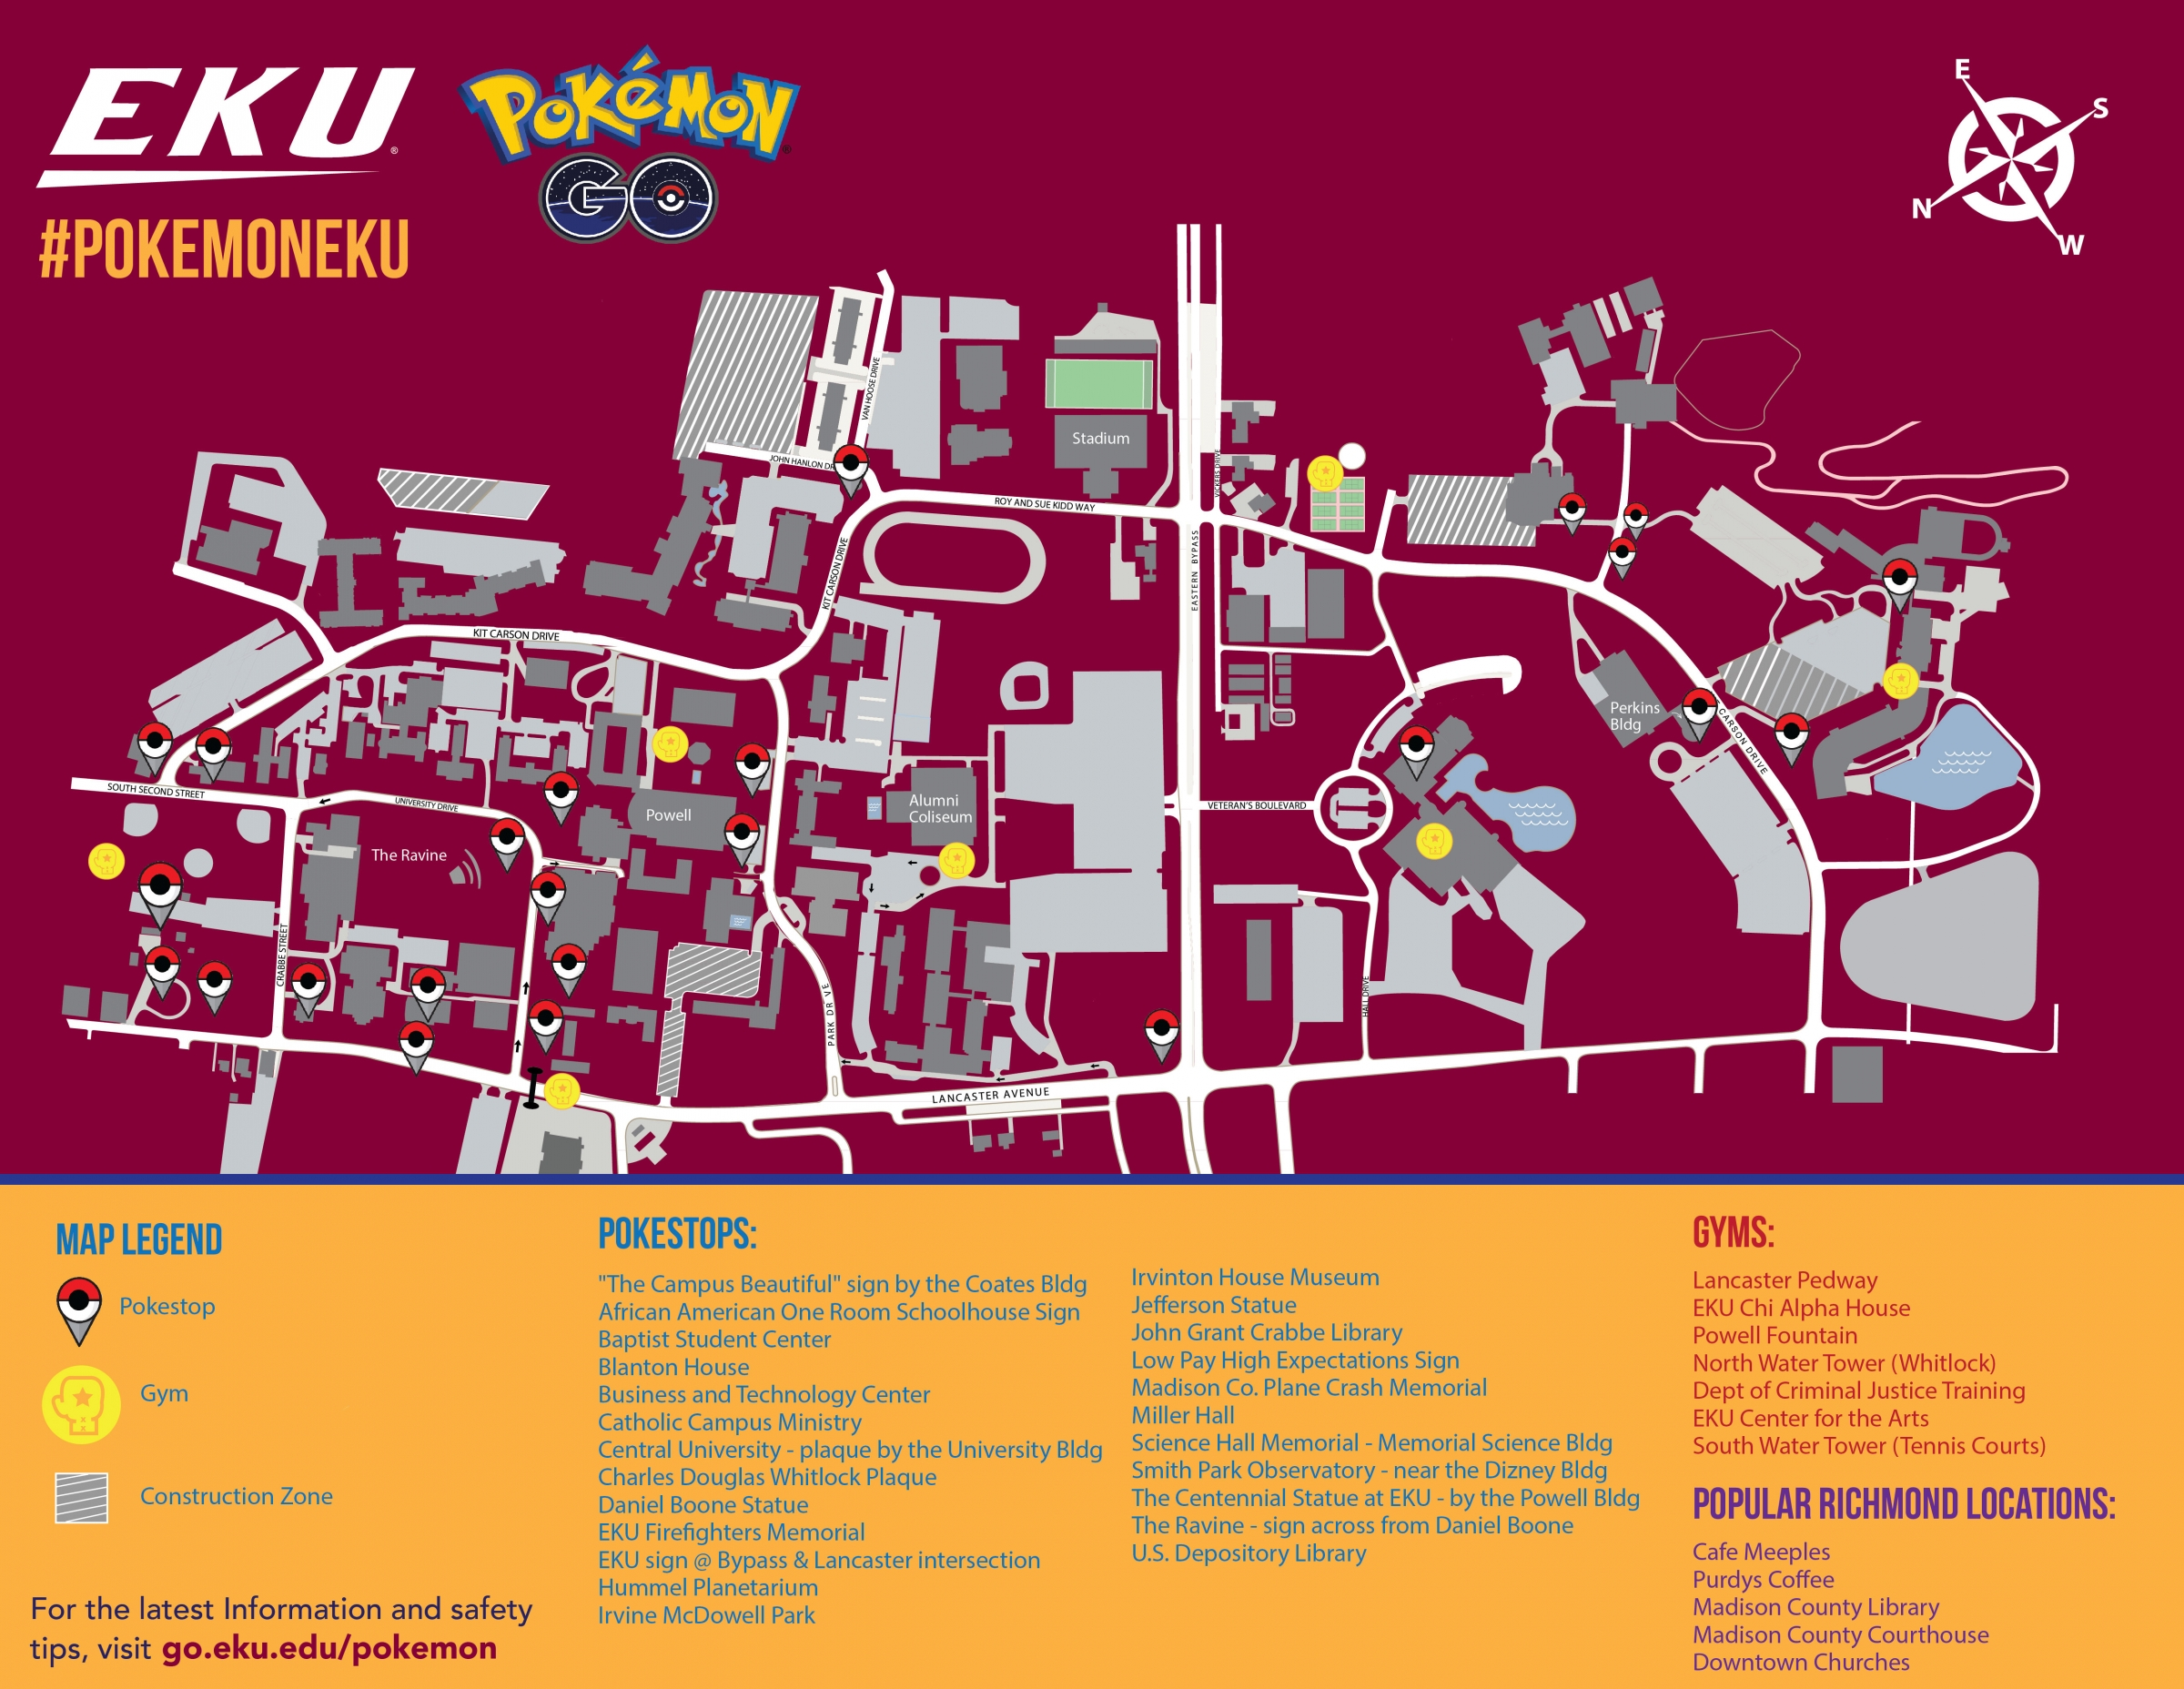 Pokémon Go @ EKU | Communications & Brand Management | Eastern